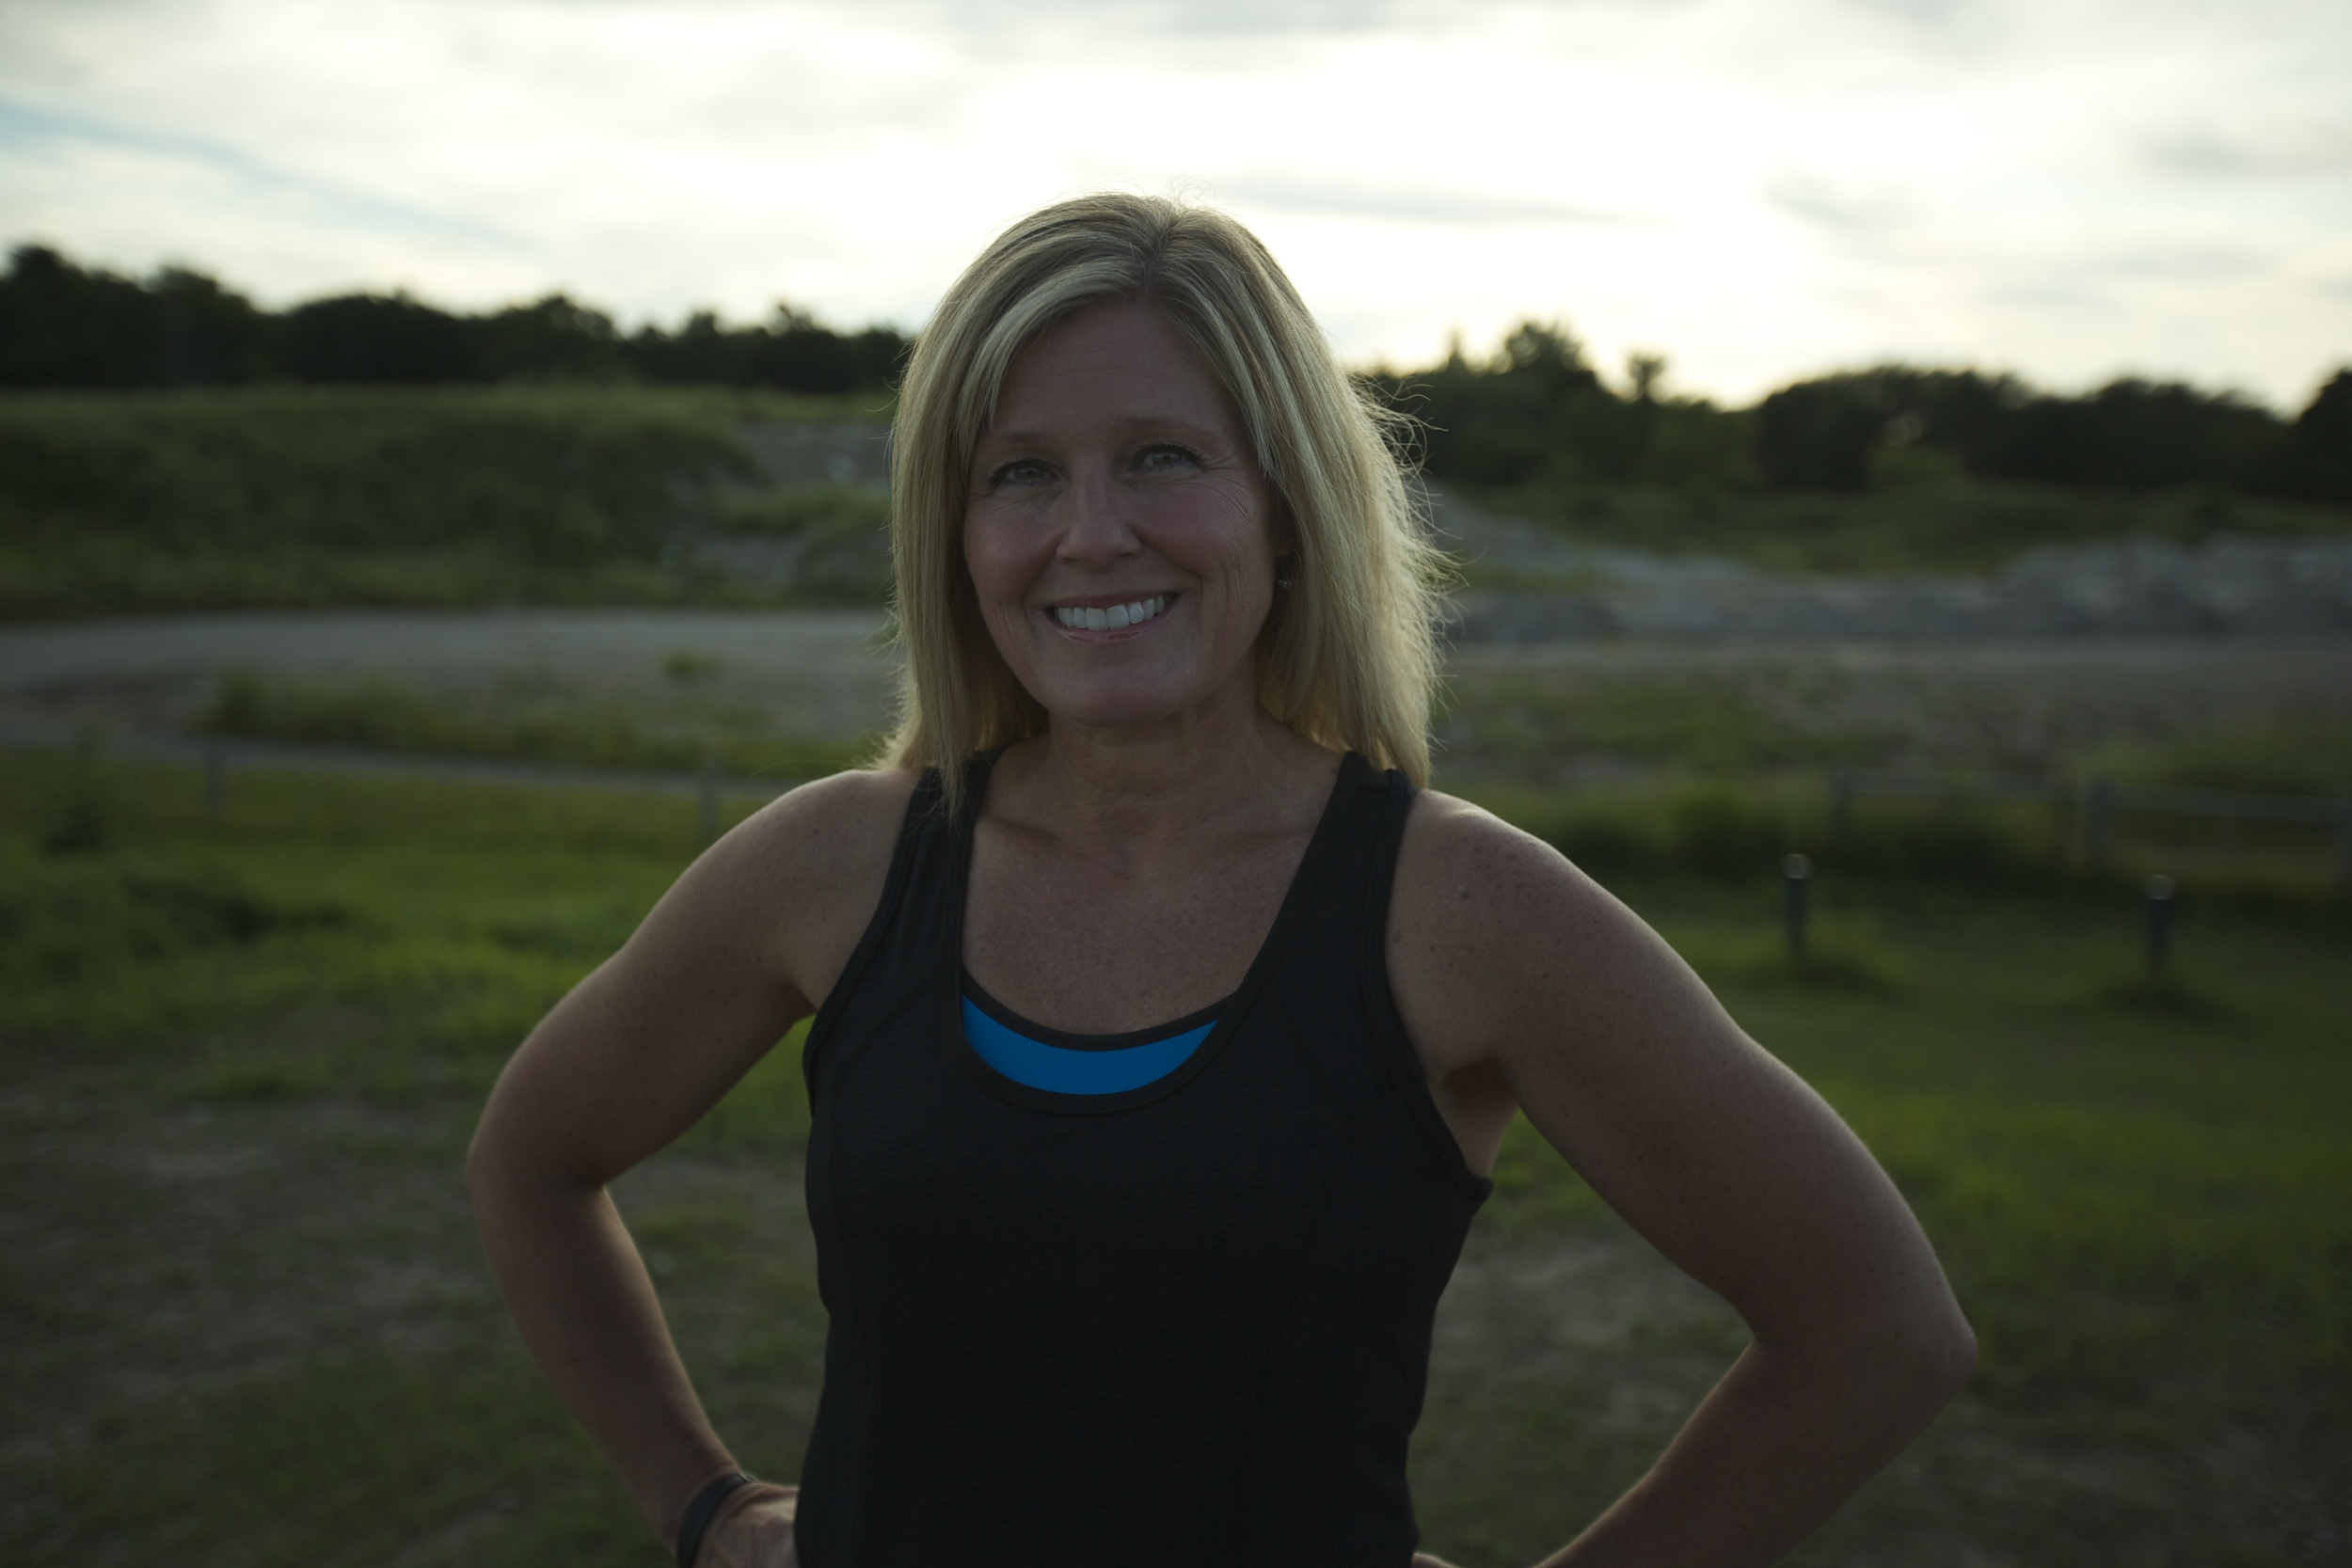 KIM patton / Instructor & Trainer